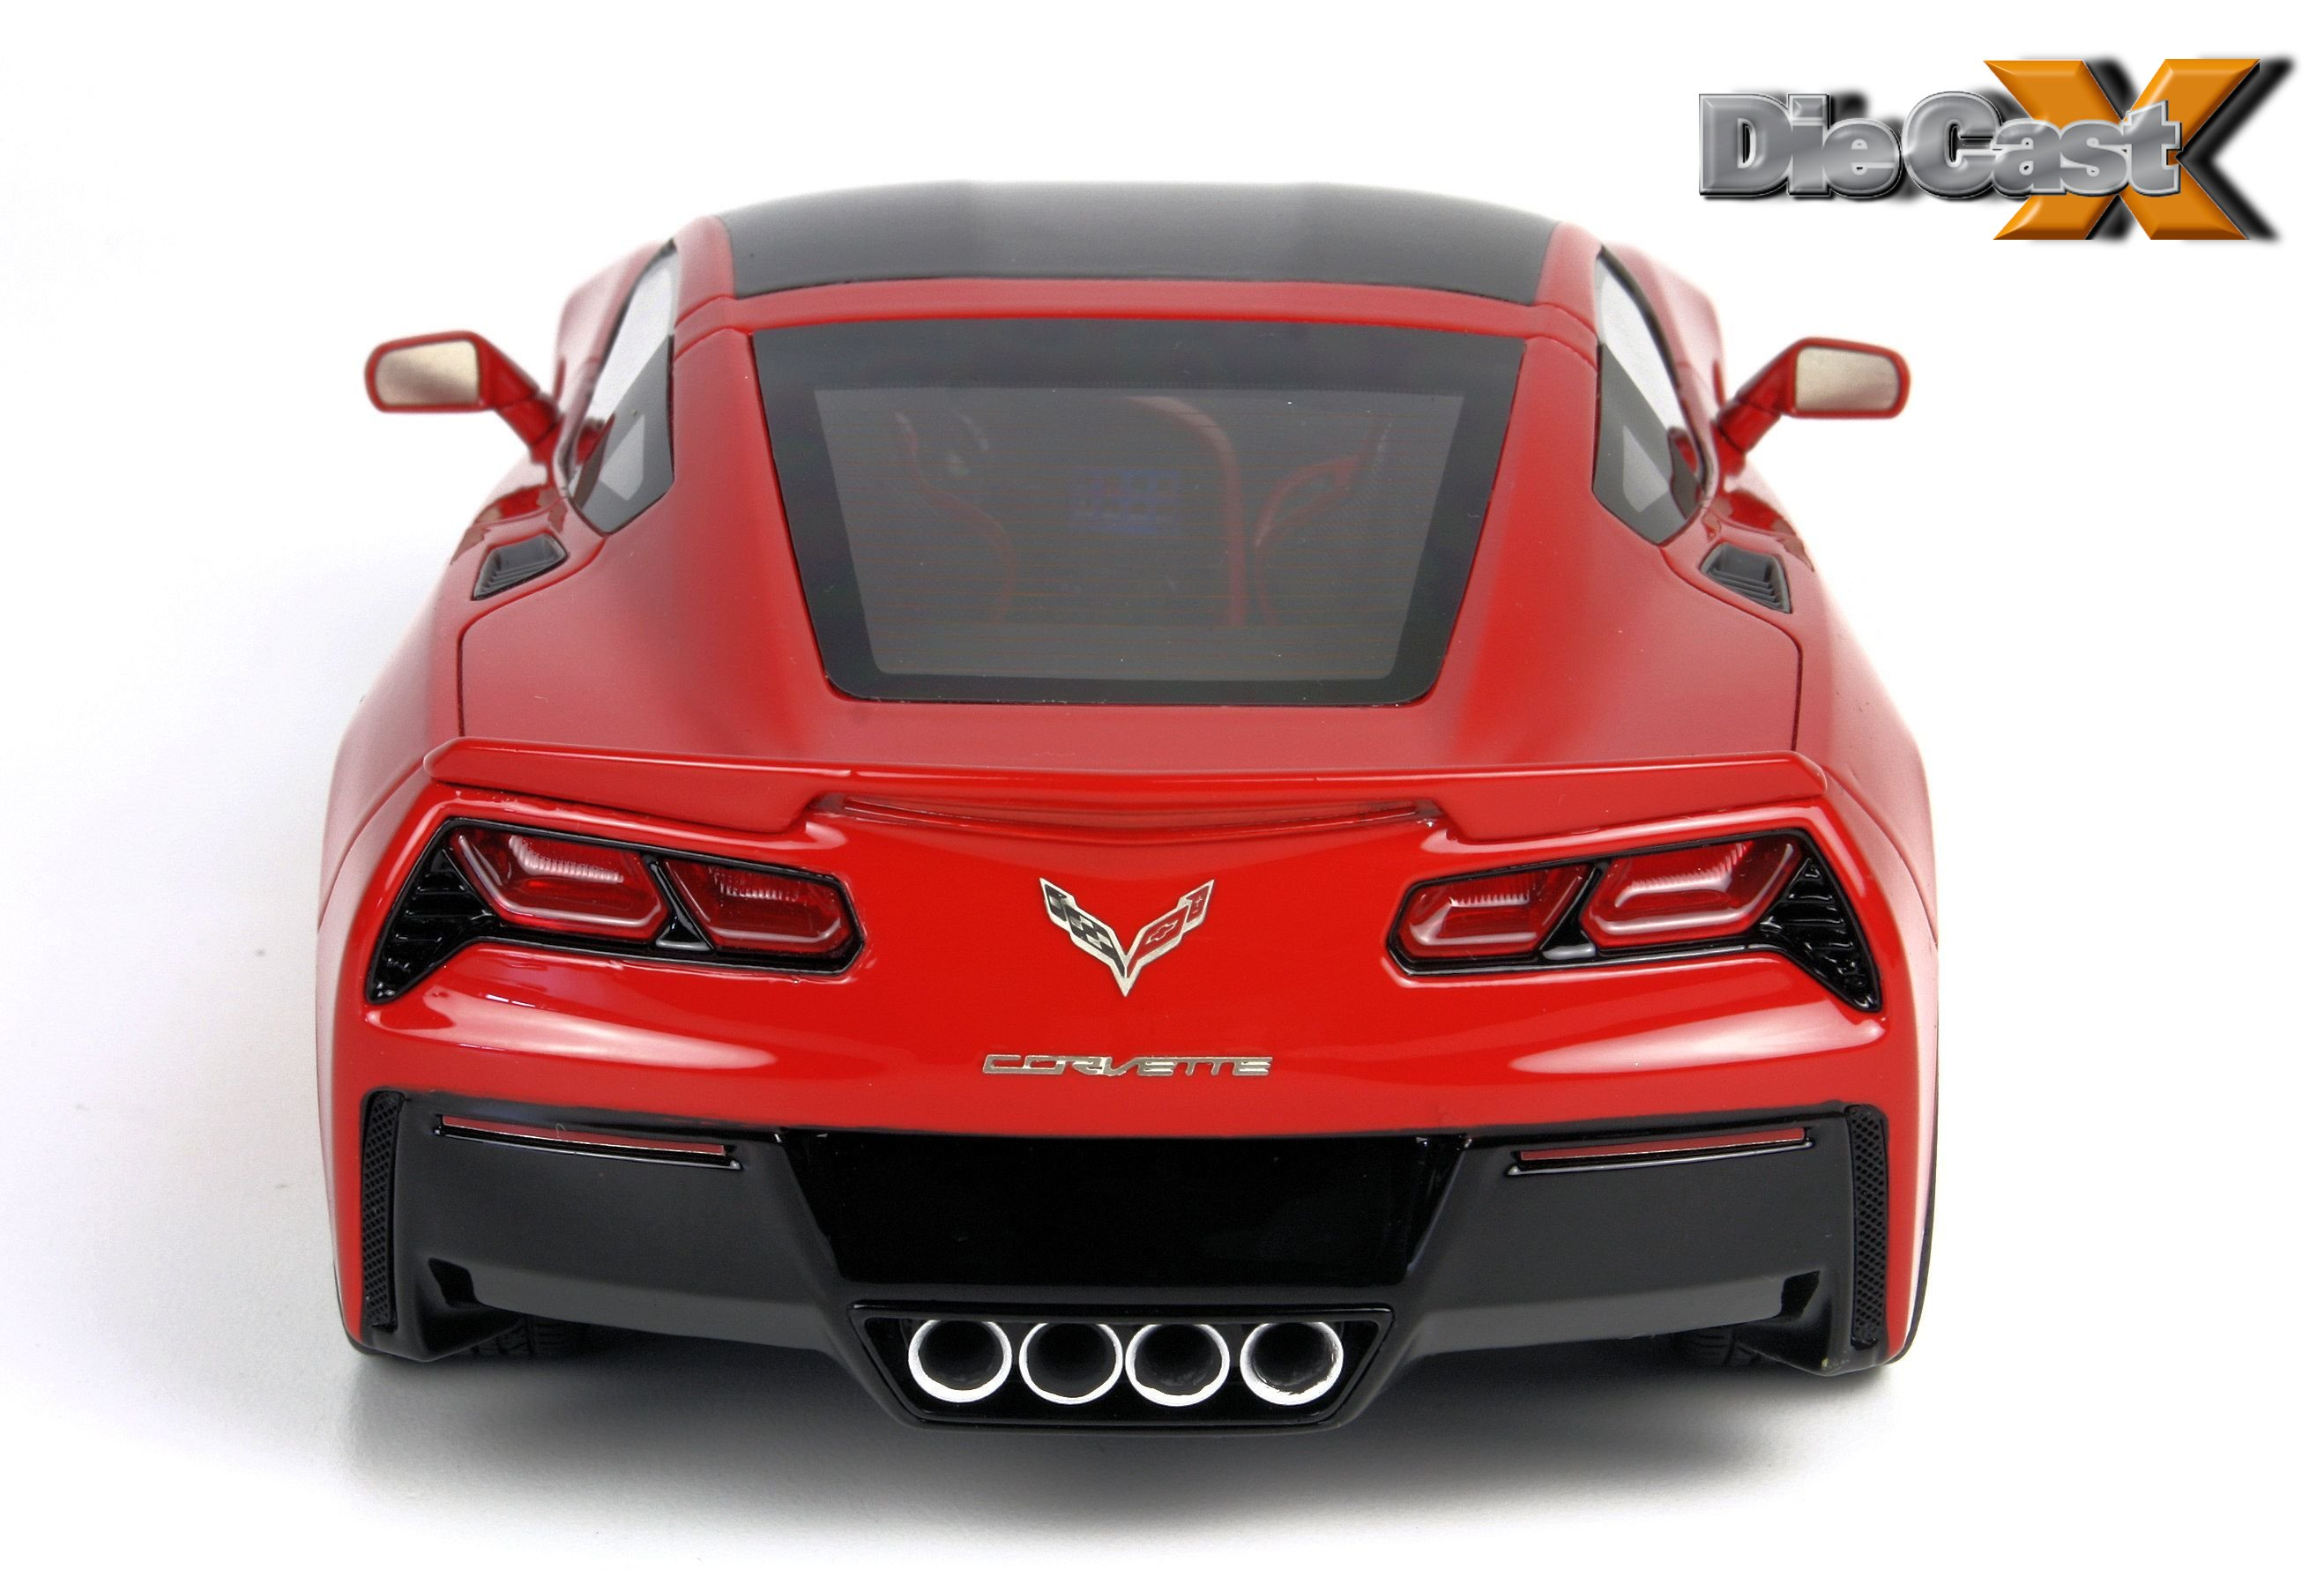 BBR's New 1:18 Resin C7 Corvette Is On The Way